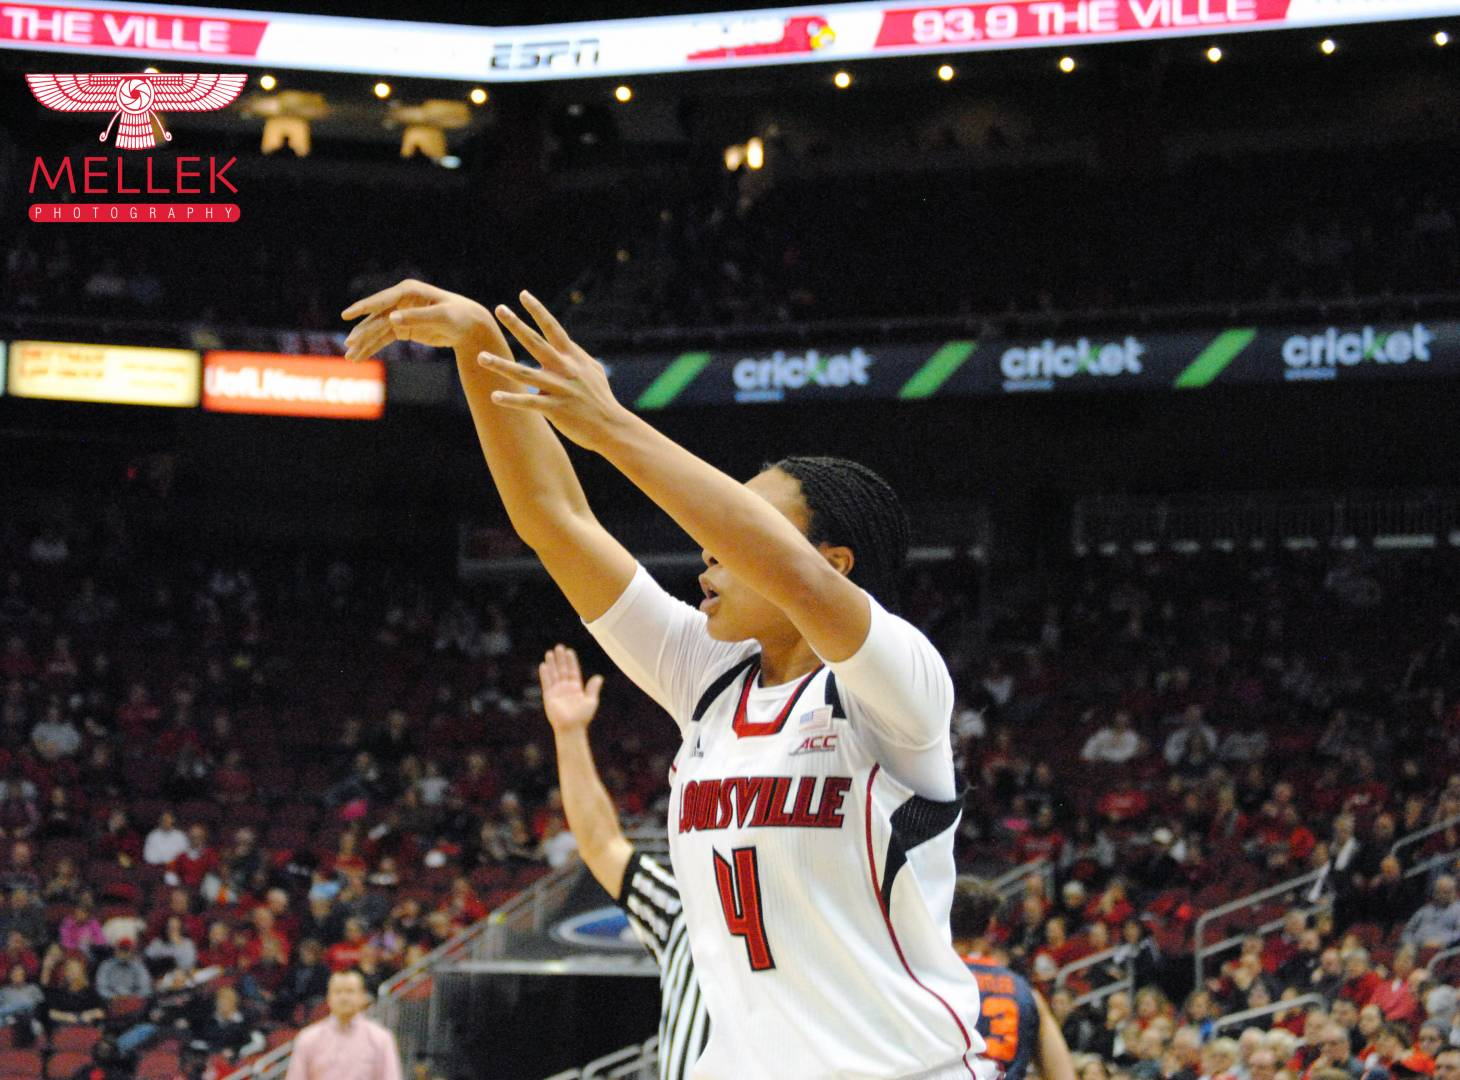 Louisville Women's Basketball vs. Syracuse Picture Gallery